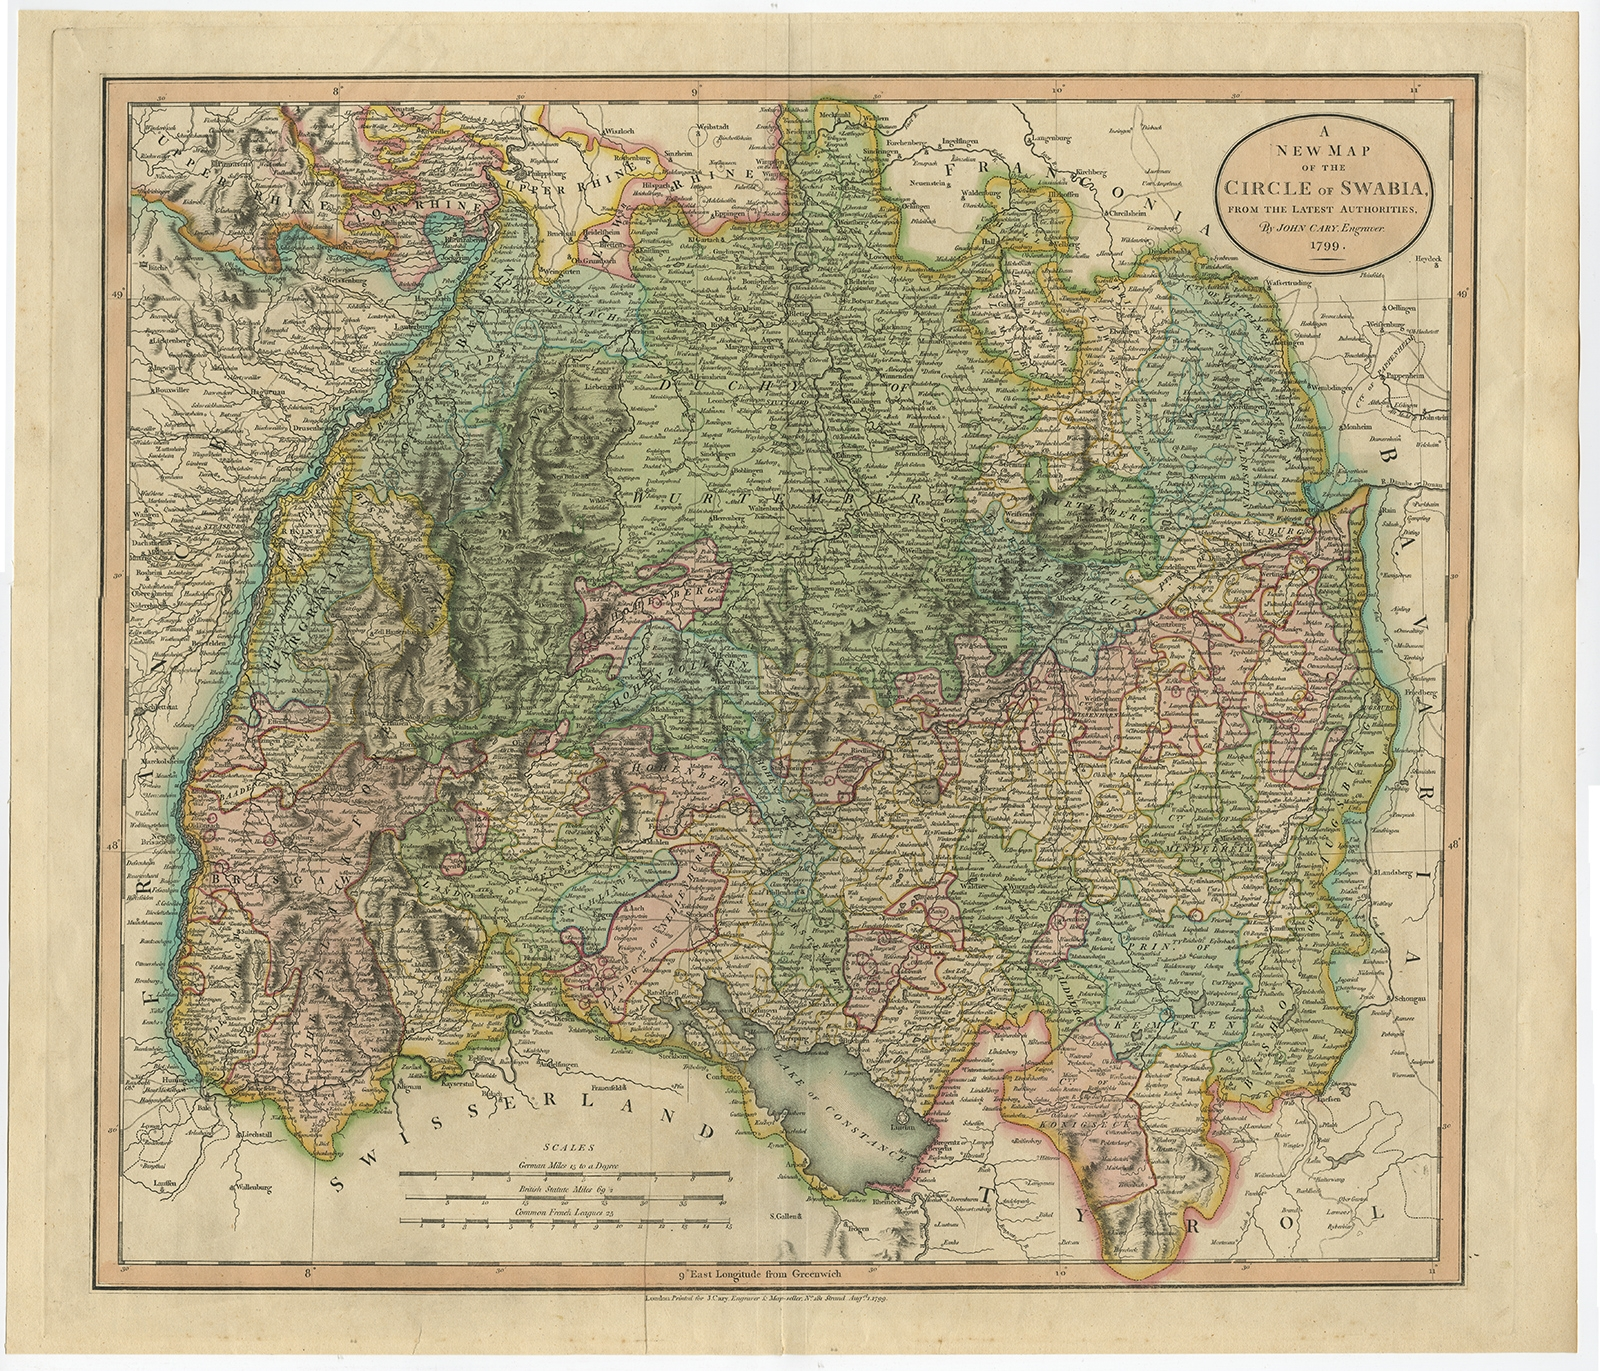 A New Map of the Circle of Swabia (..) - Cary (1799) Cary Map on